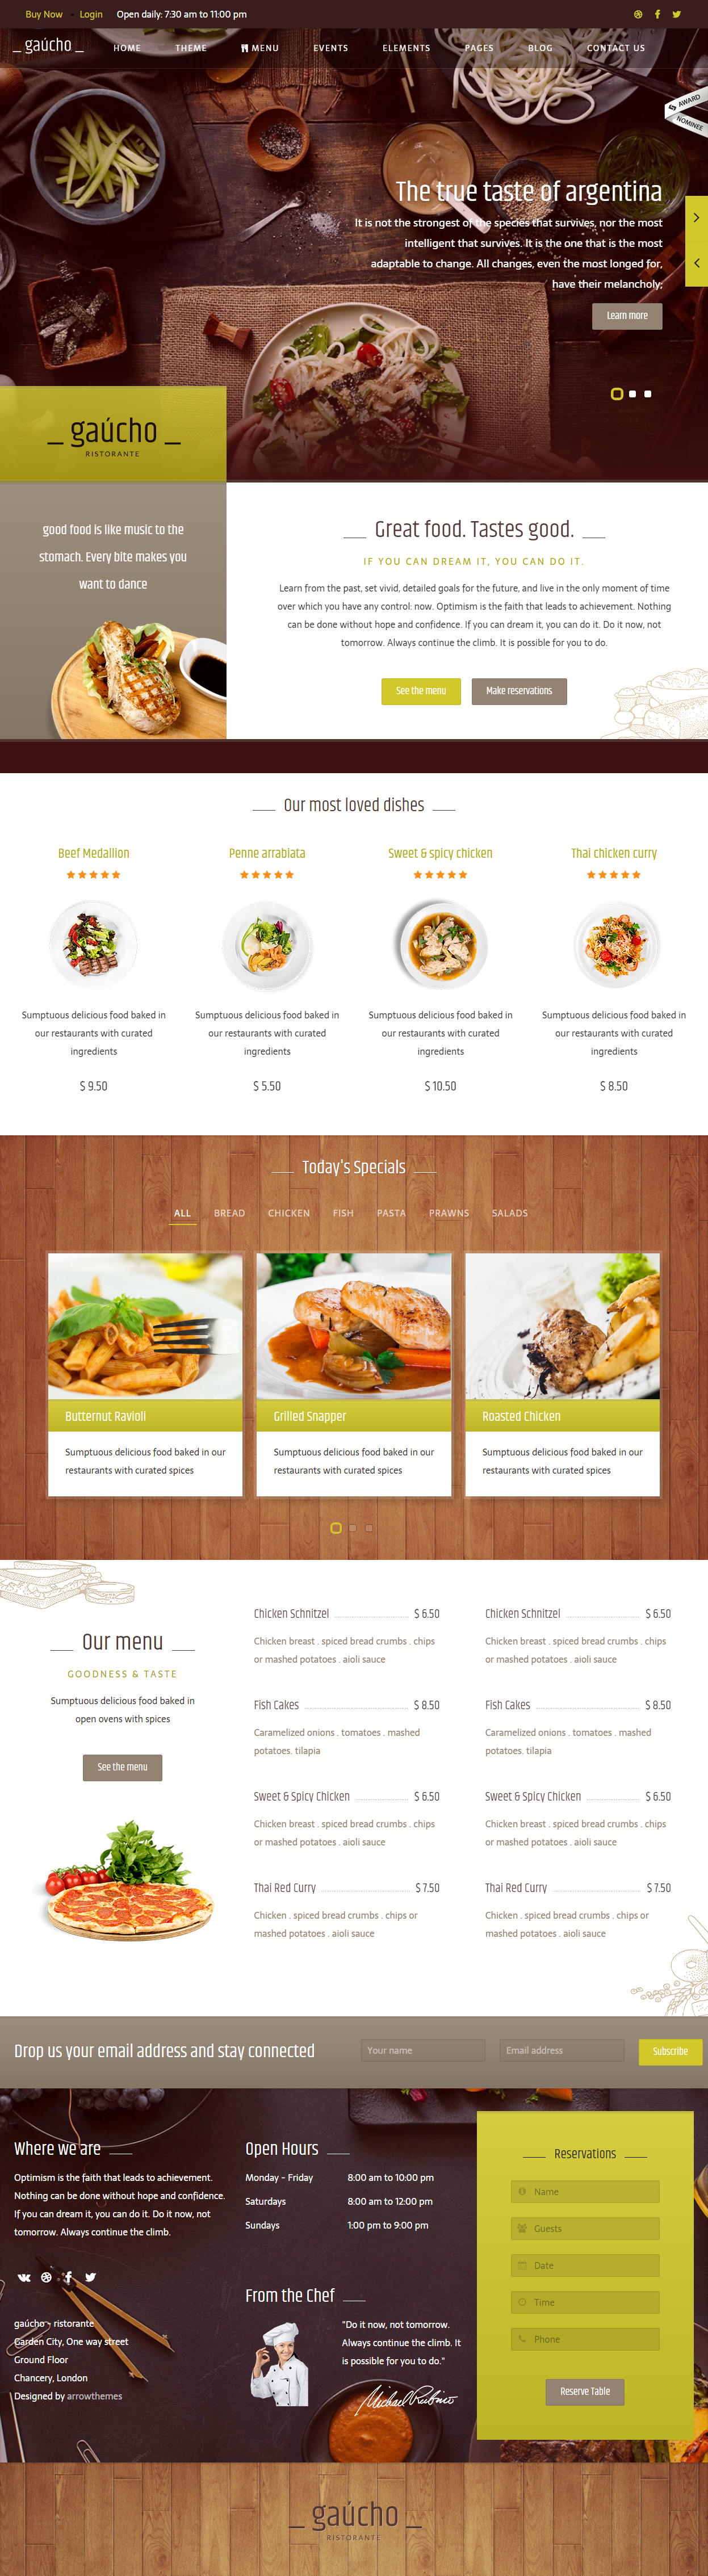 Gaucho Cafe And Restaurant Website Templates